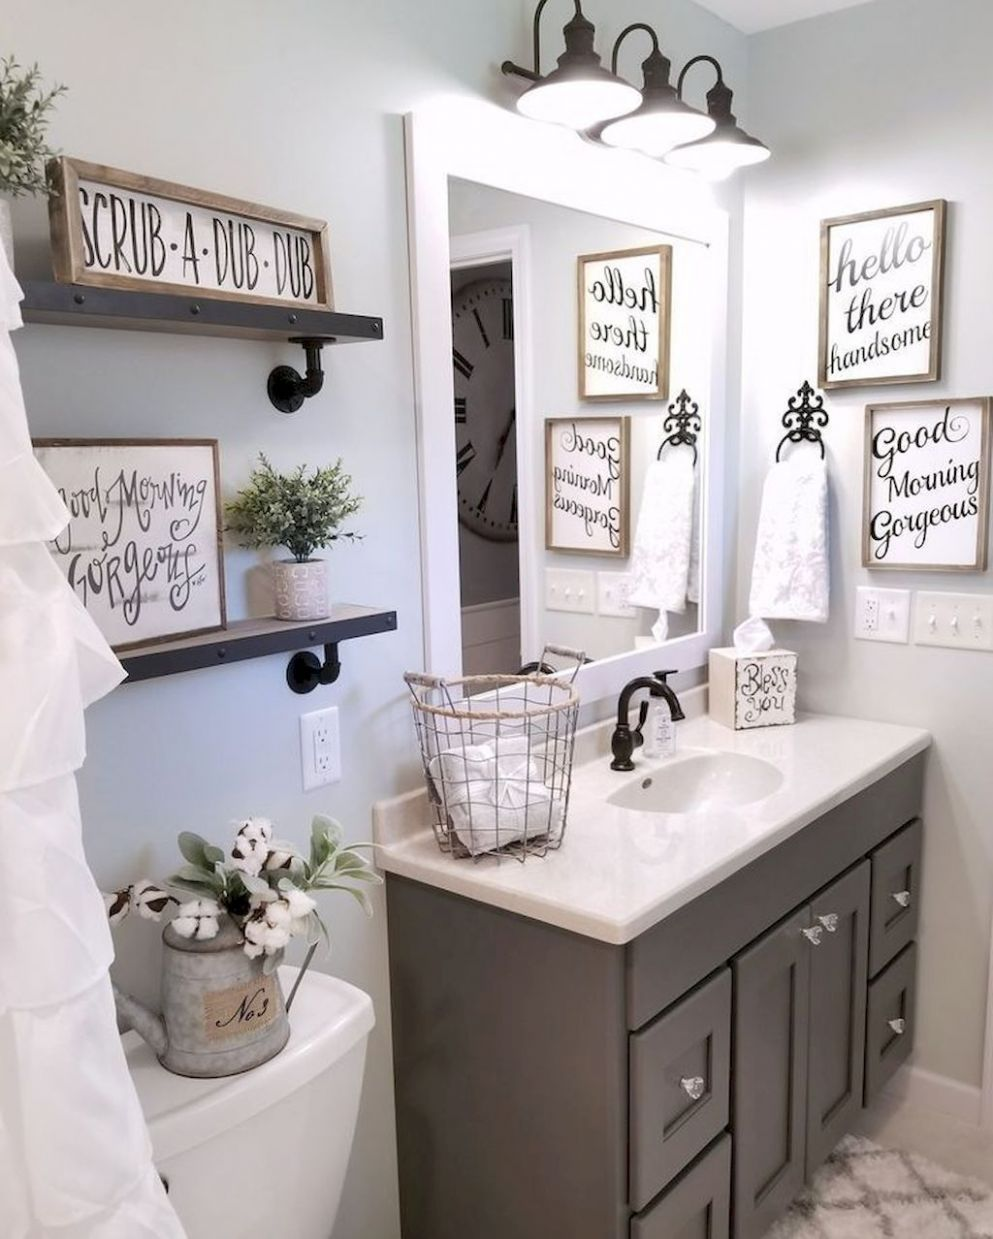 8 Spectacular Farmhouse Bathroom Decor Ideas | Badezimmer dekor ...